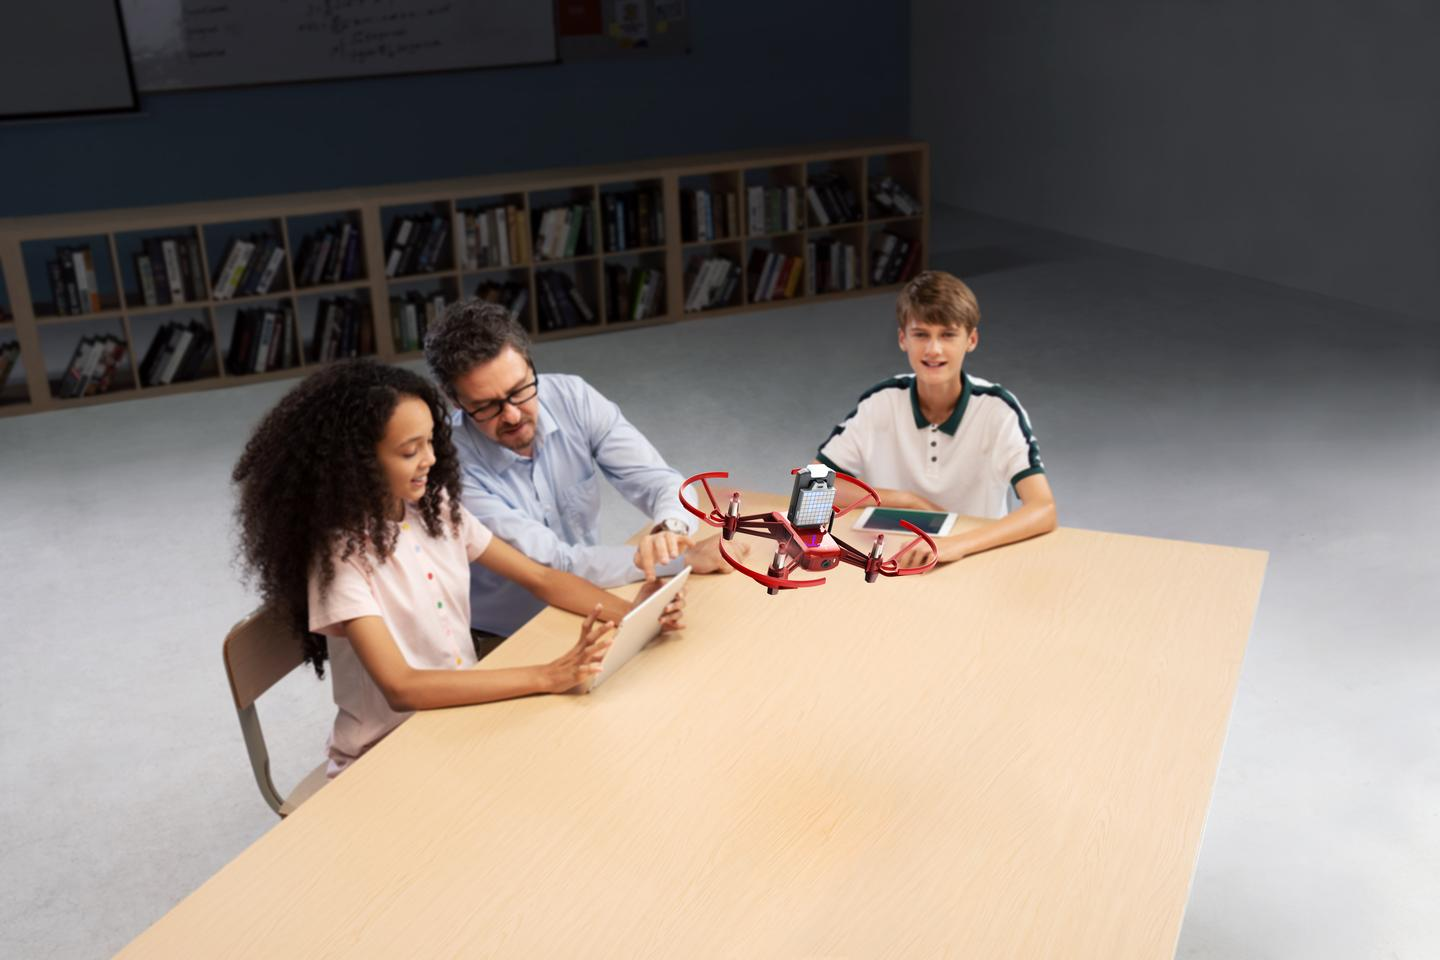 DJI Education is all about teaching the programmers and roboticists of tomorrow with engaging hardware and software